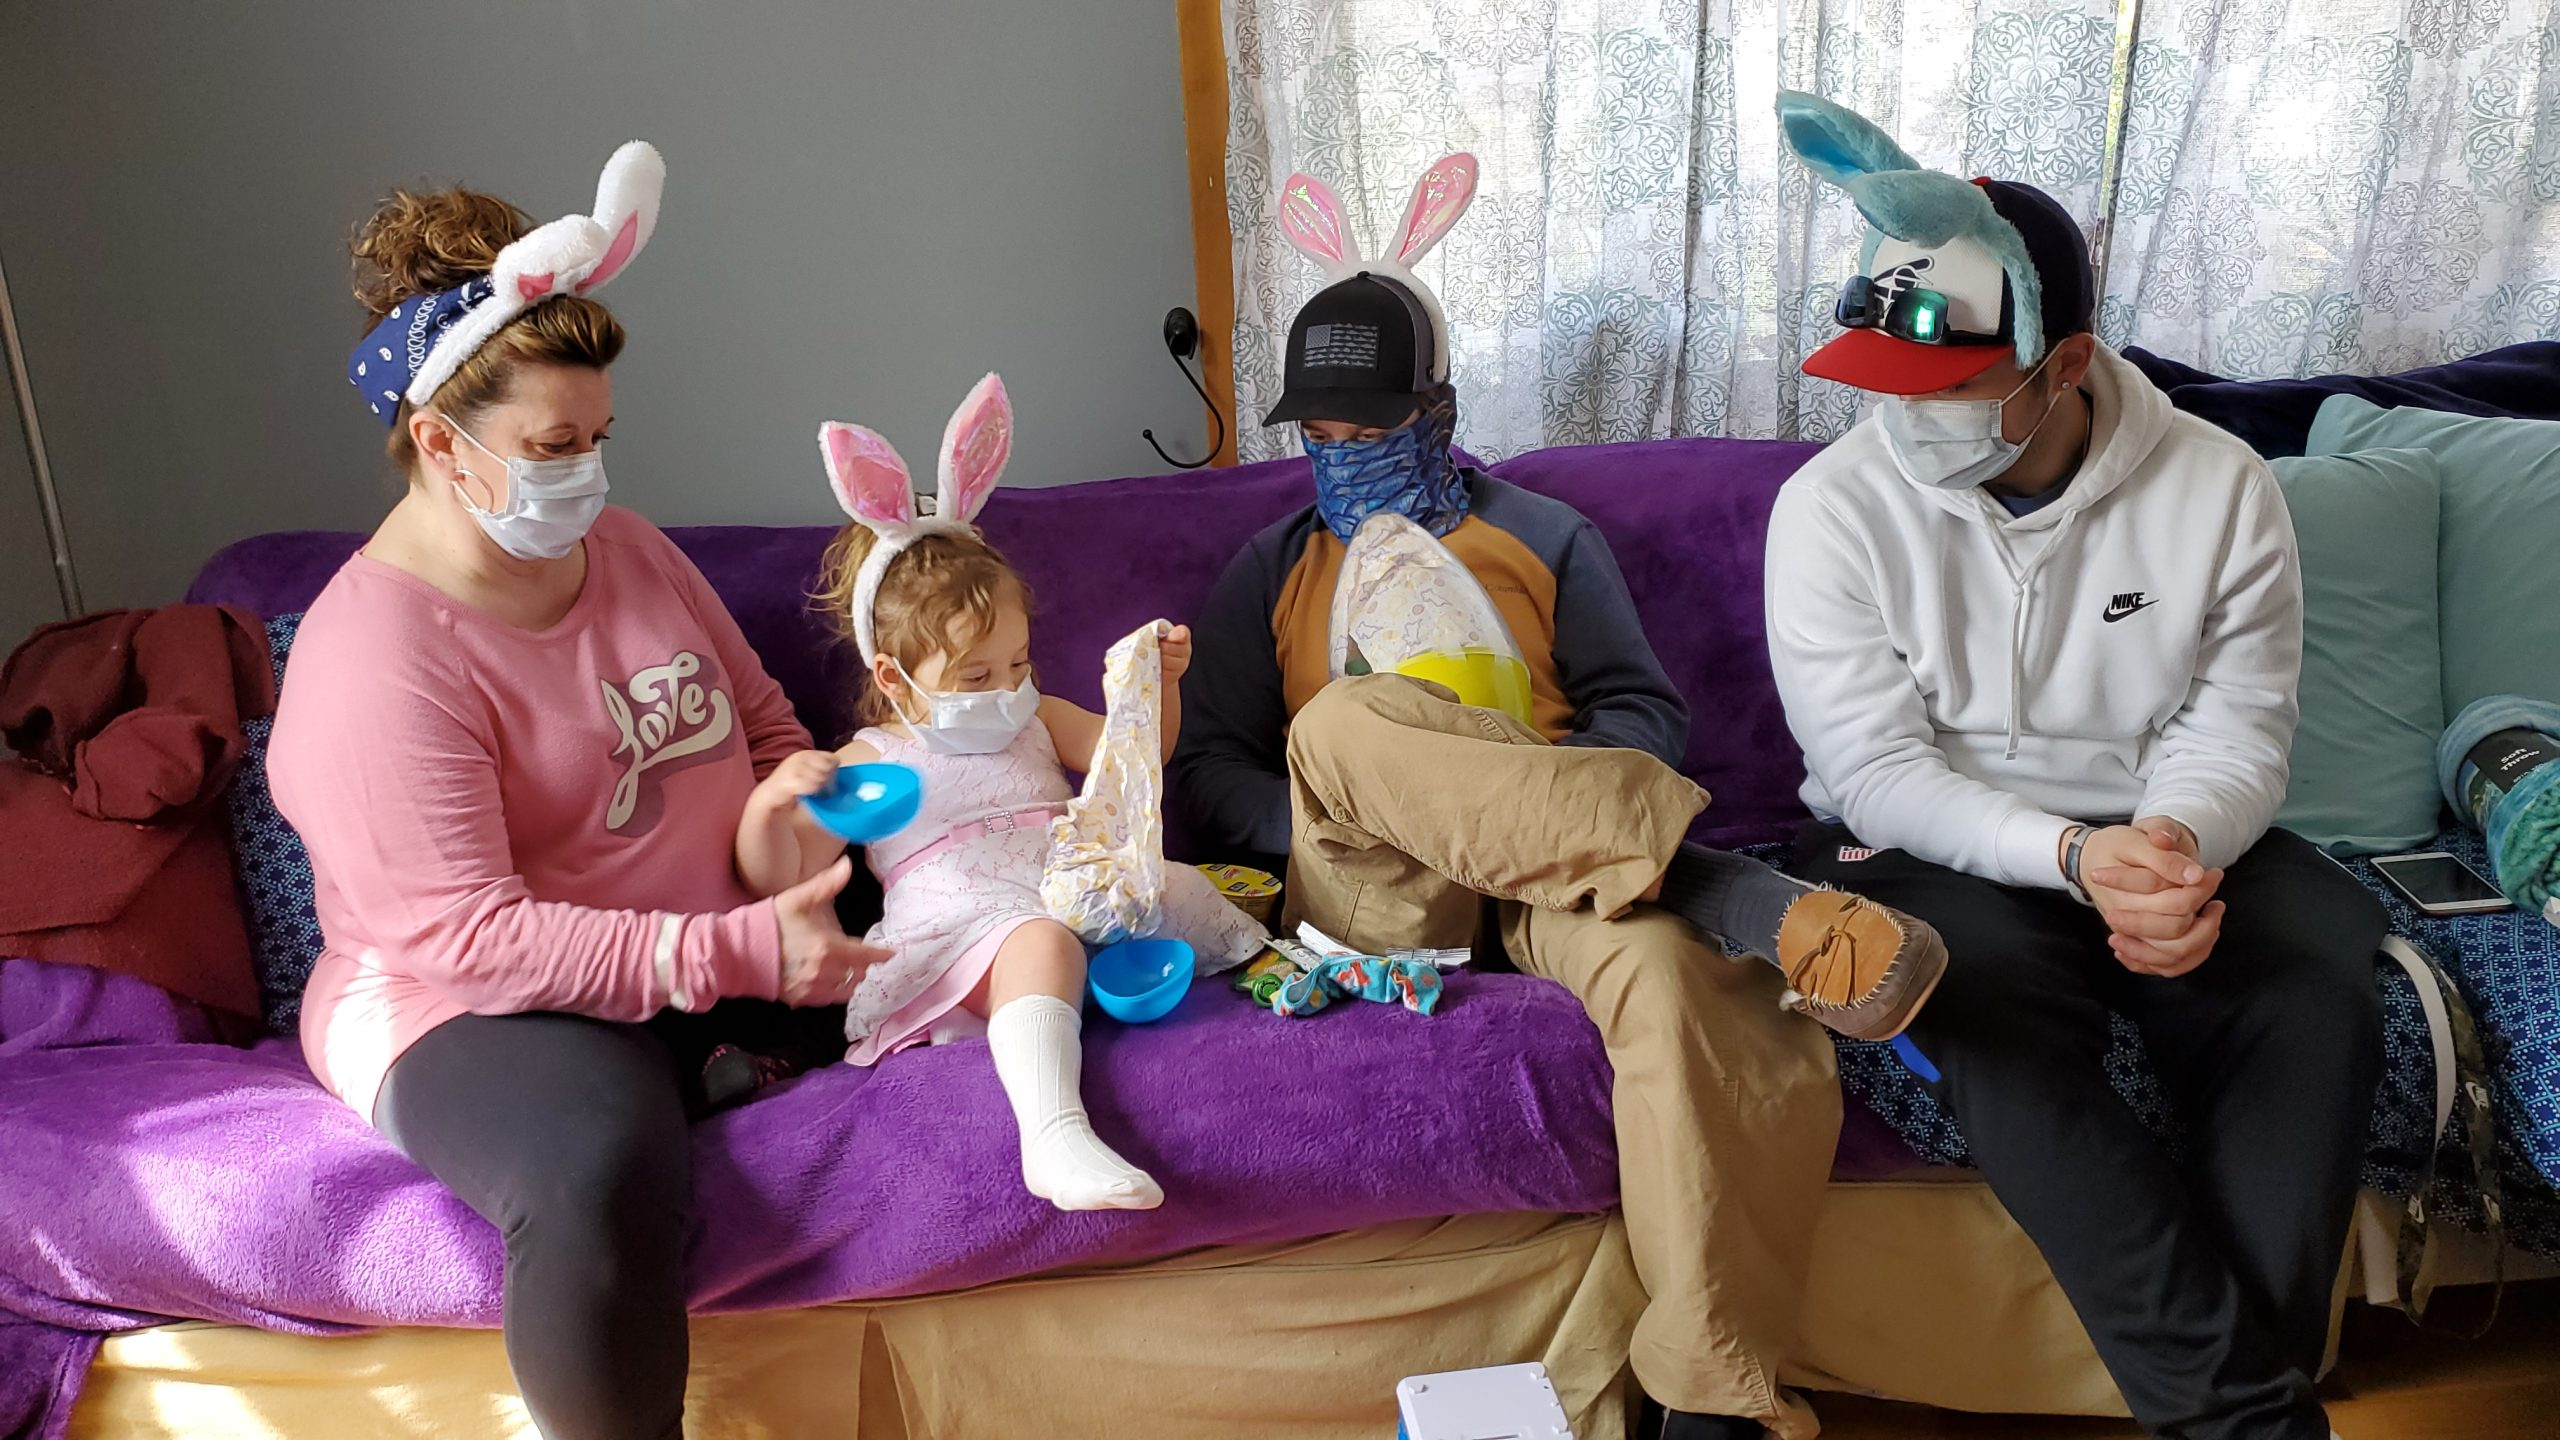 One child and three adults wearing face masks and bunny ears.